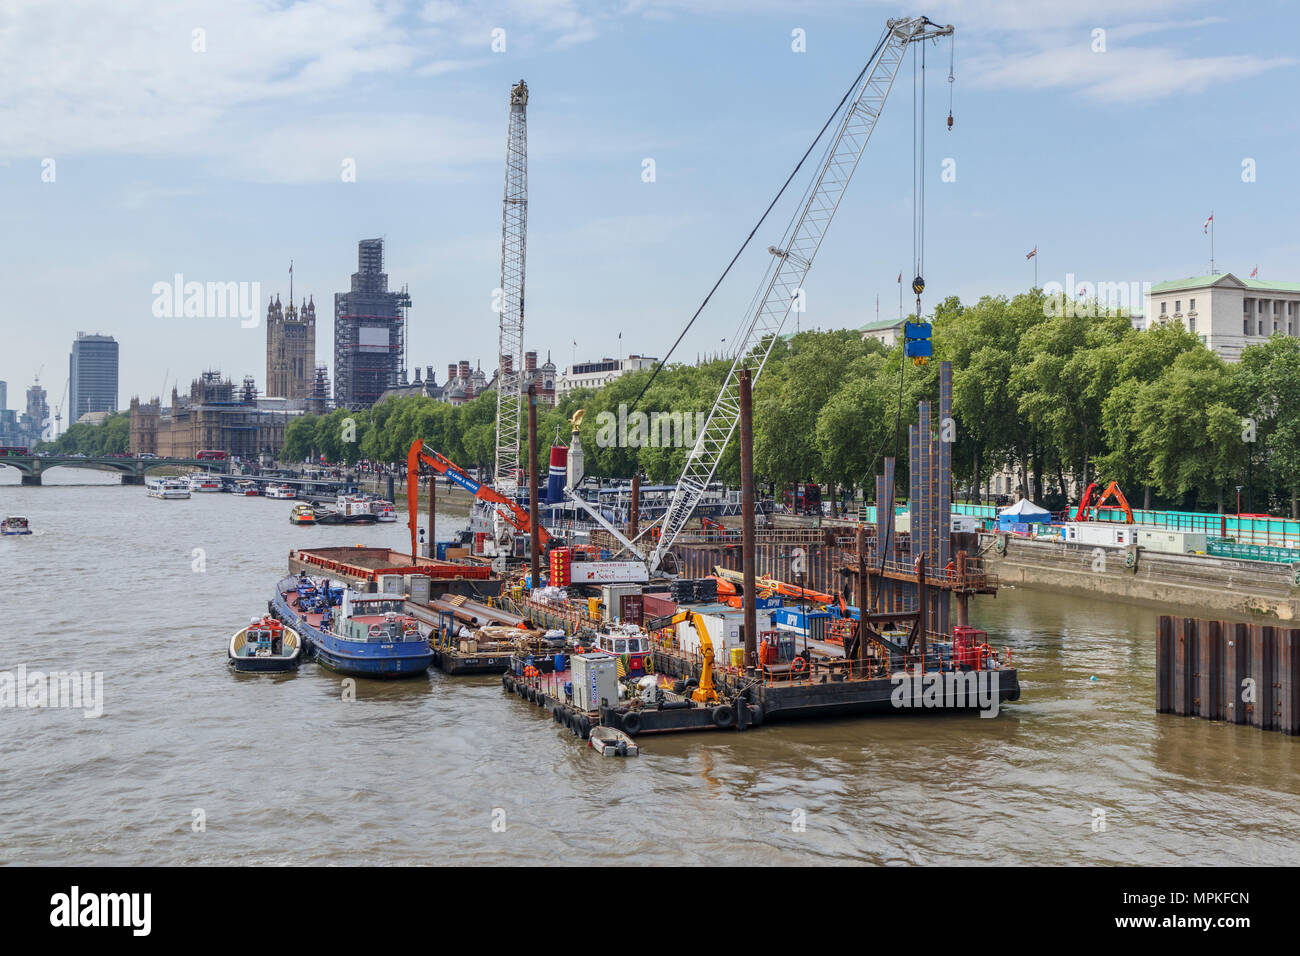 Thames Tideway Tunnel works on Victoria Embankment Foreshore, London SW1, on the River Thames looking towards Westminster - Stock Image